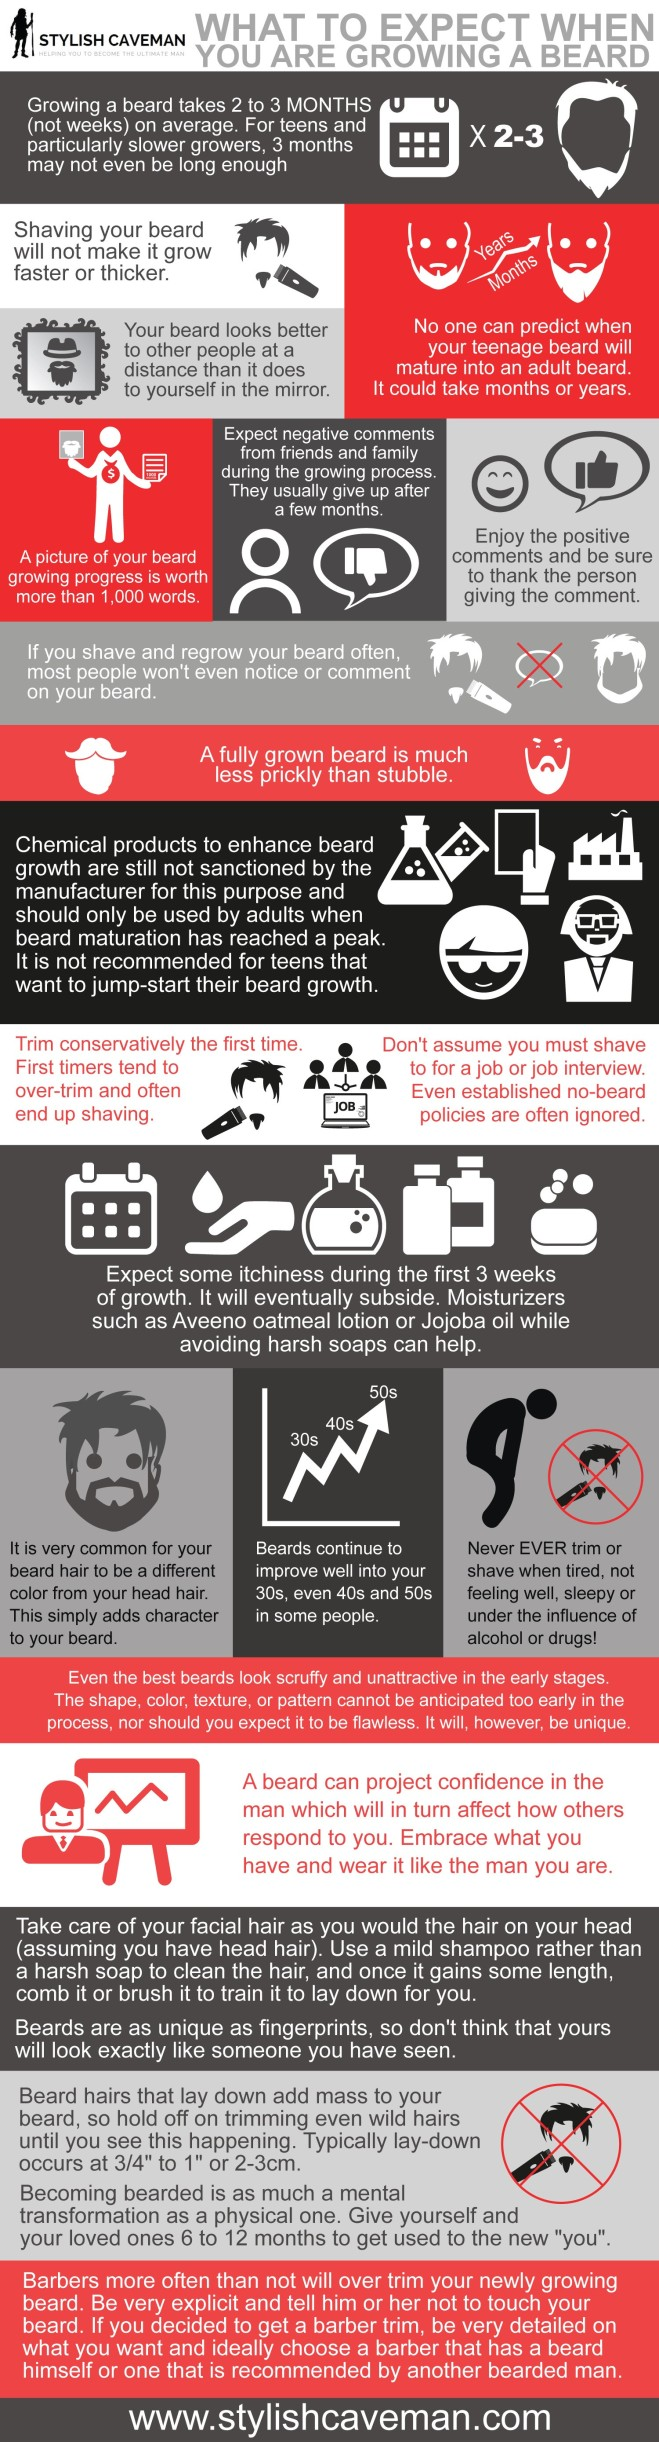 what to expect when you grow a beard